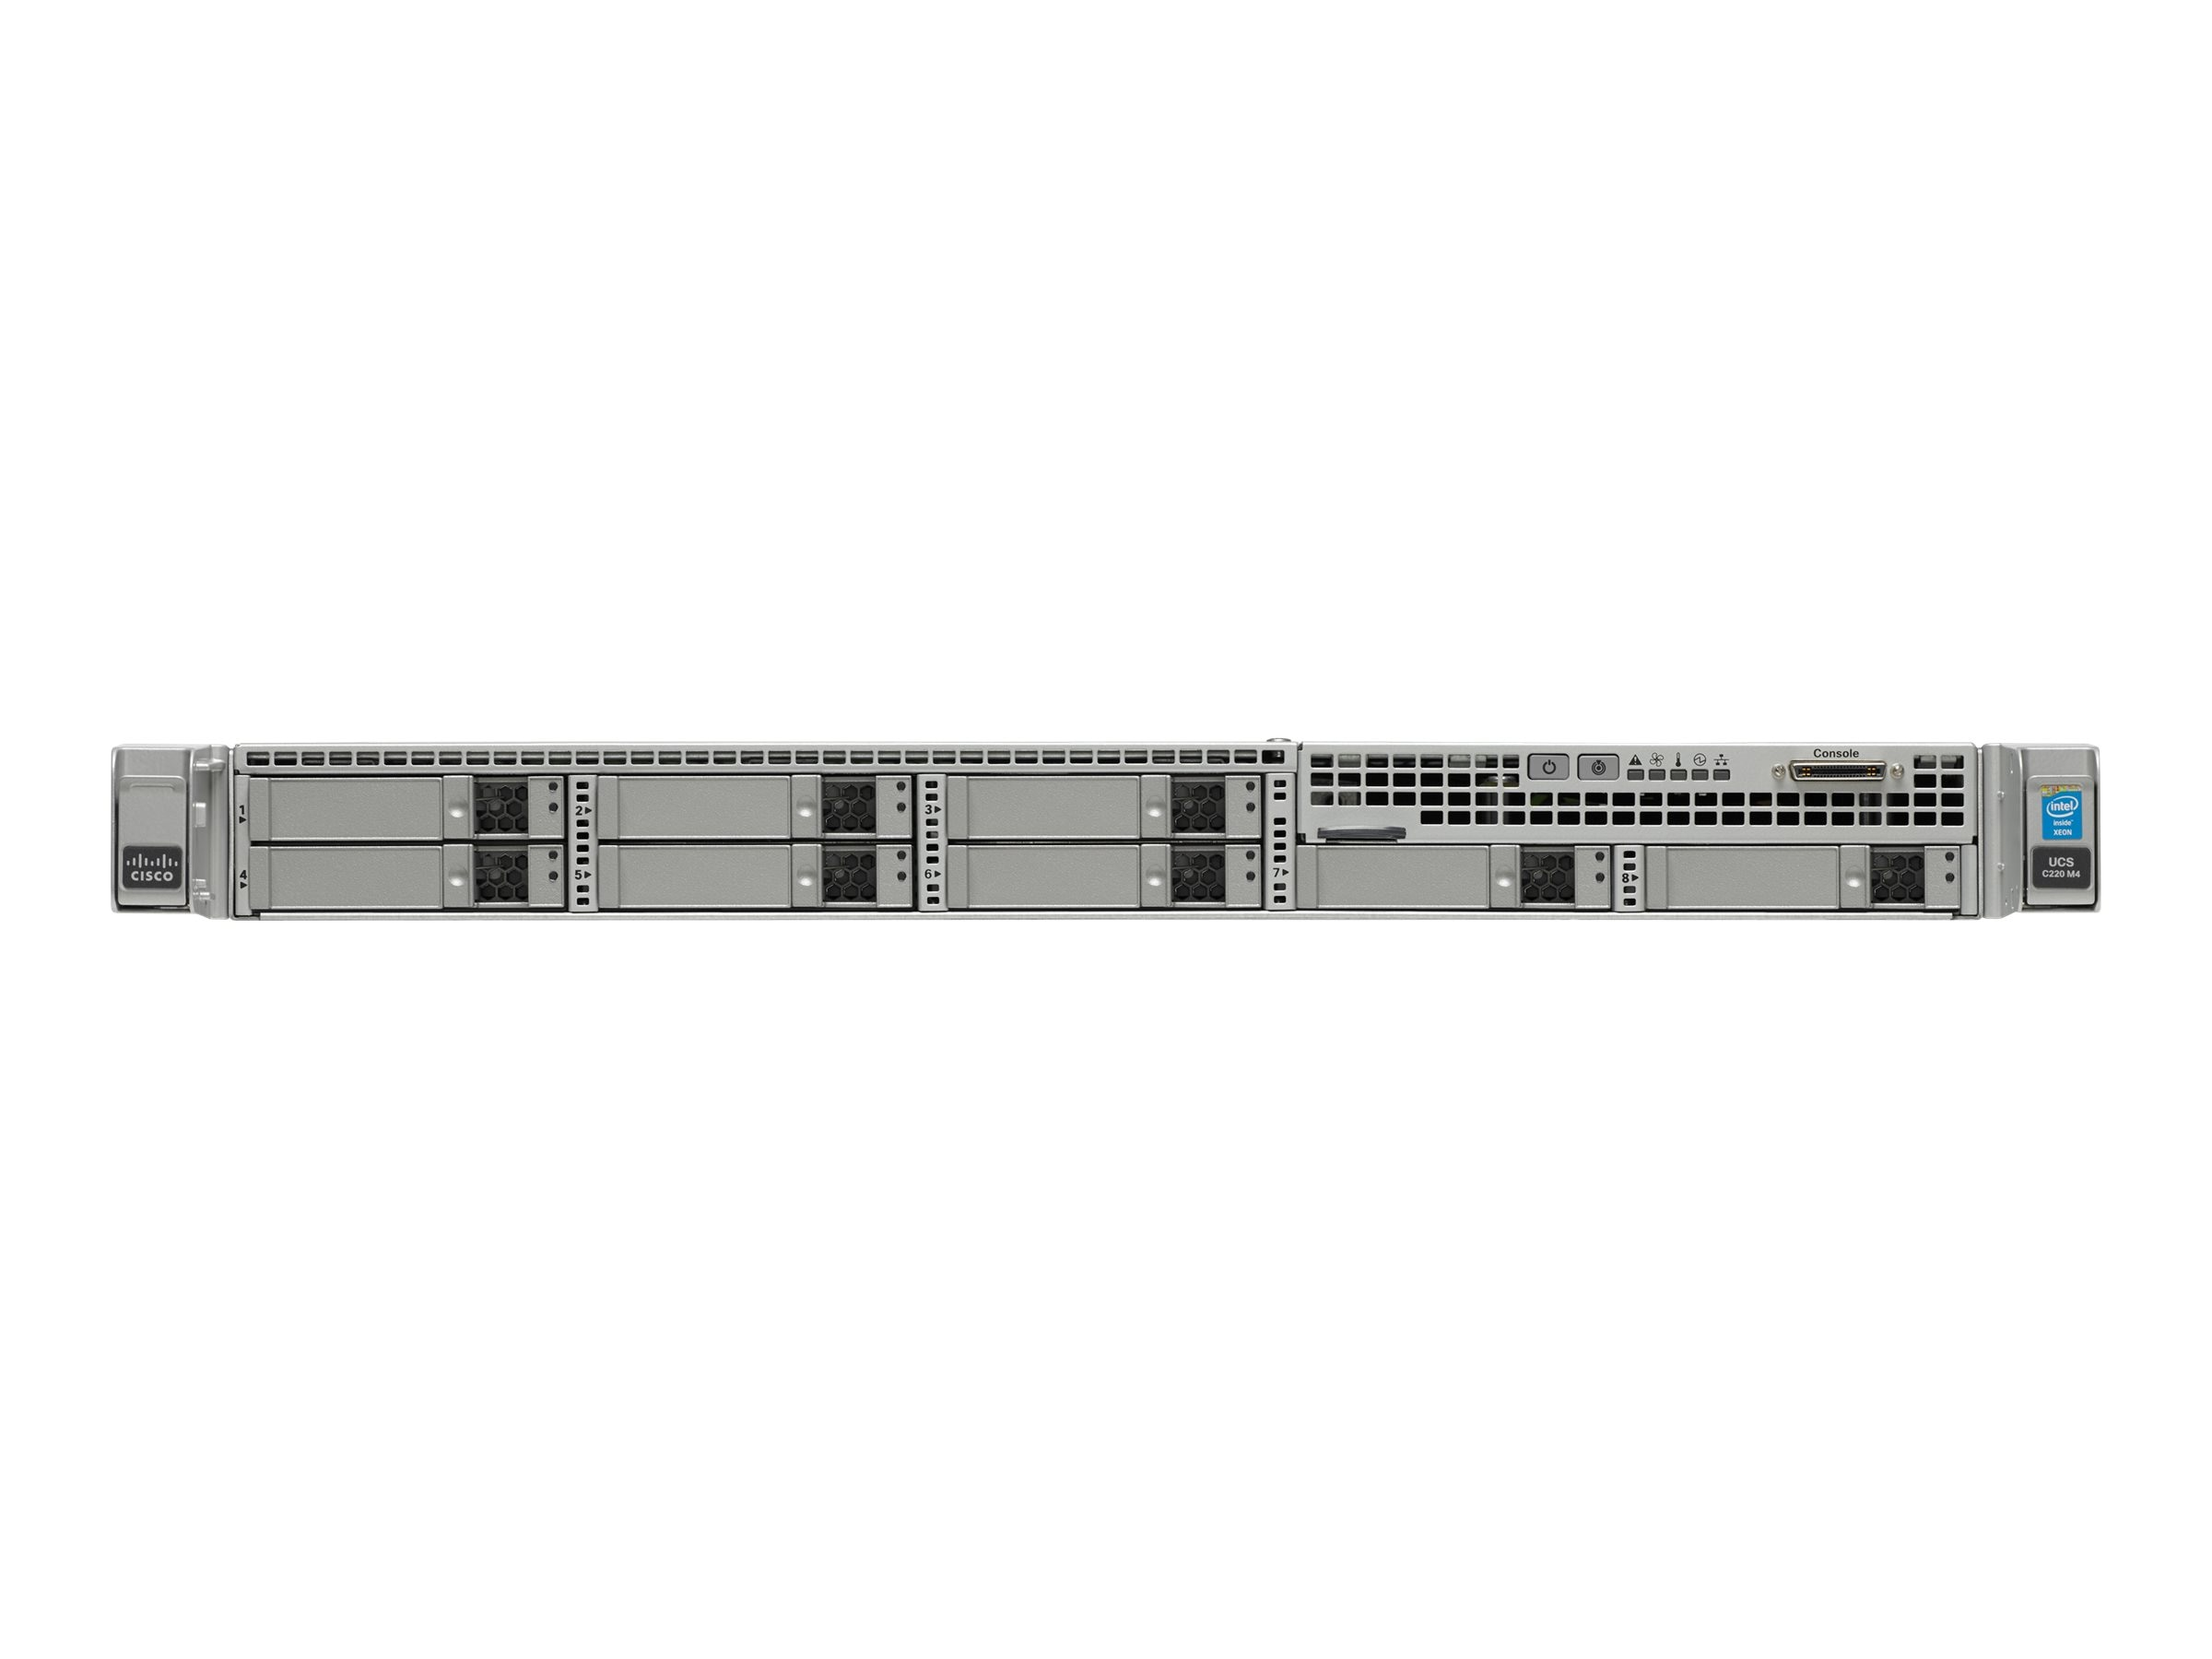 Cisco UCS-SPR-C220M4-BS1 Image 2